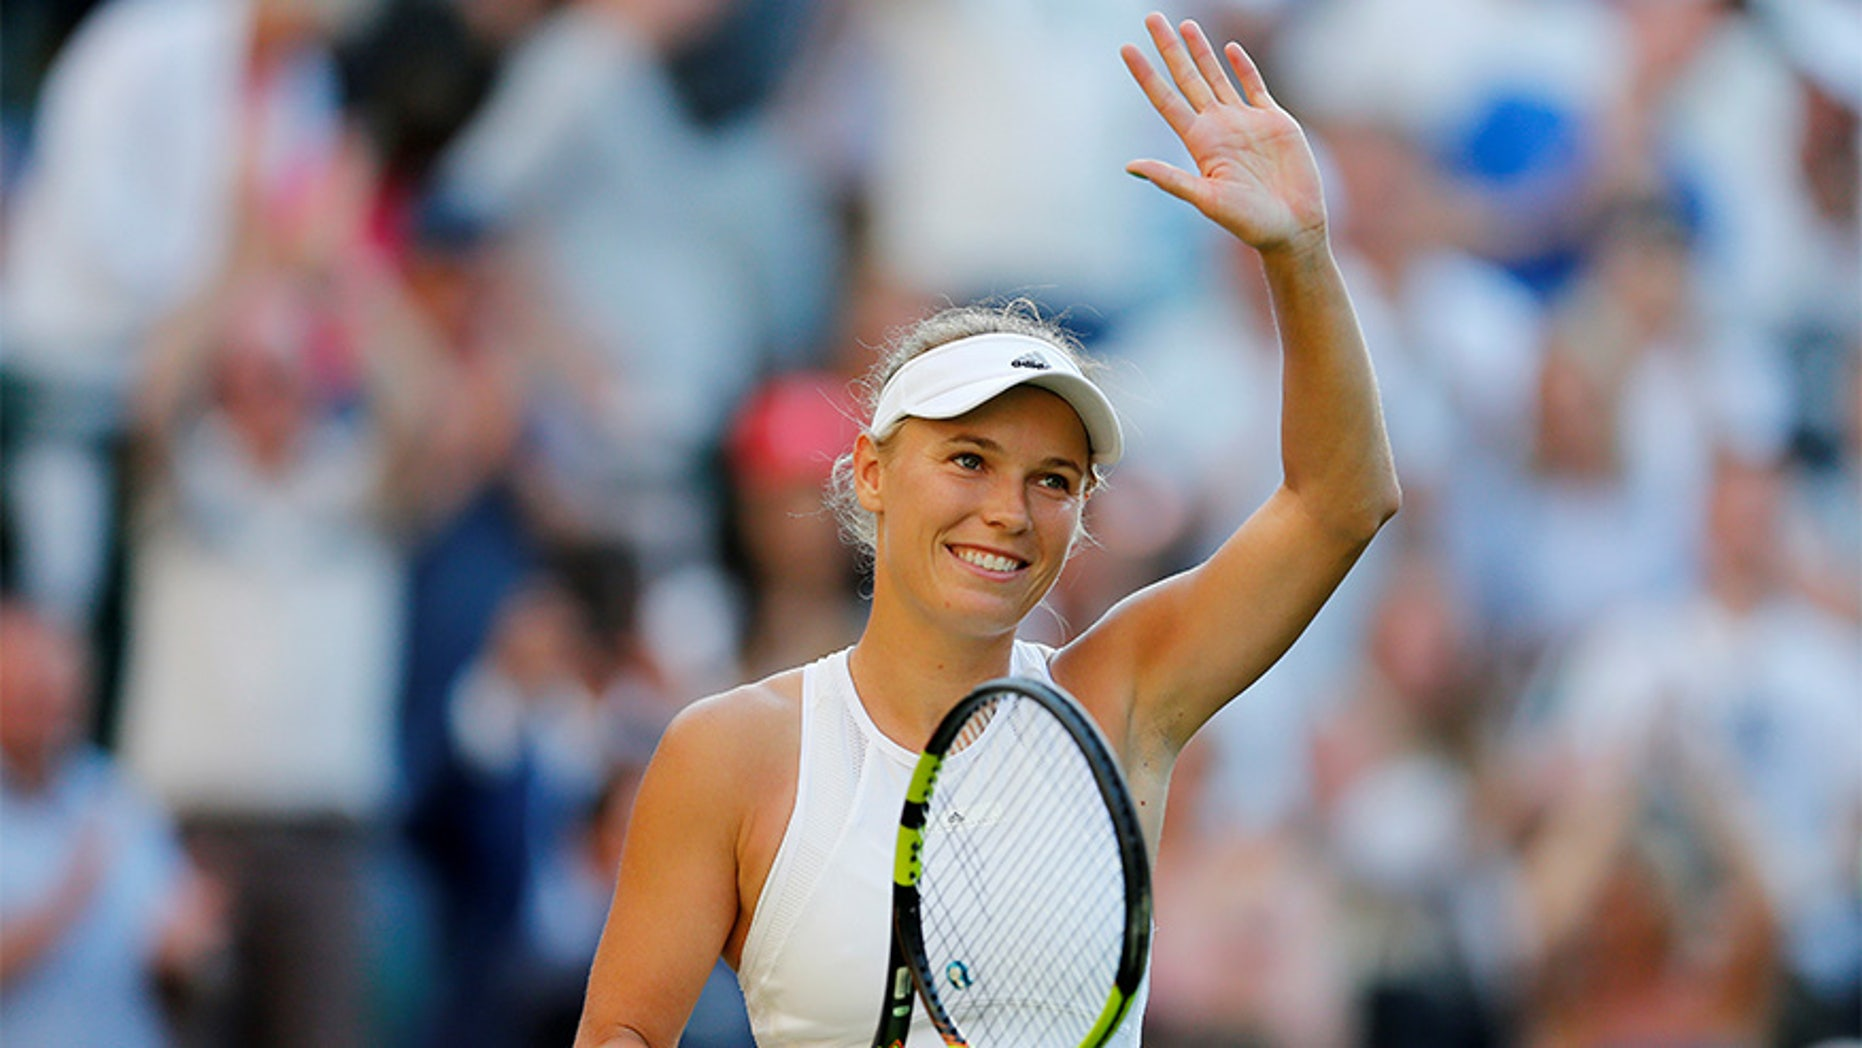 Denmark's Caroline Wozniacki celebrates winning the first round match against Hungary's Timea Babos.